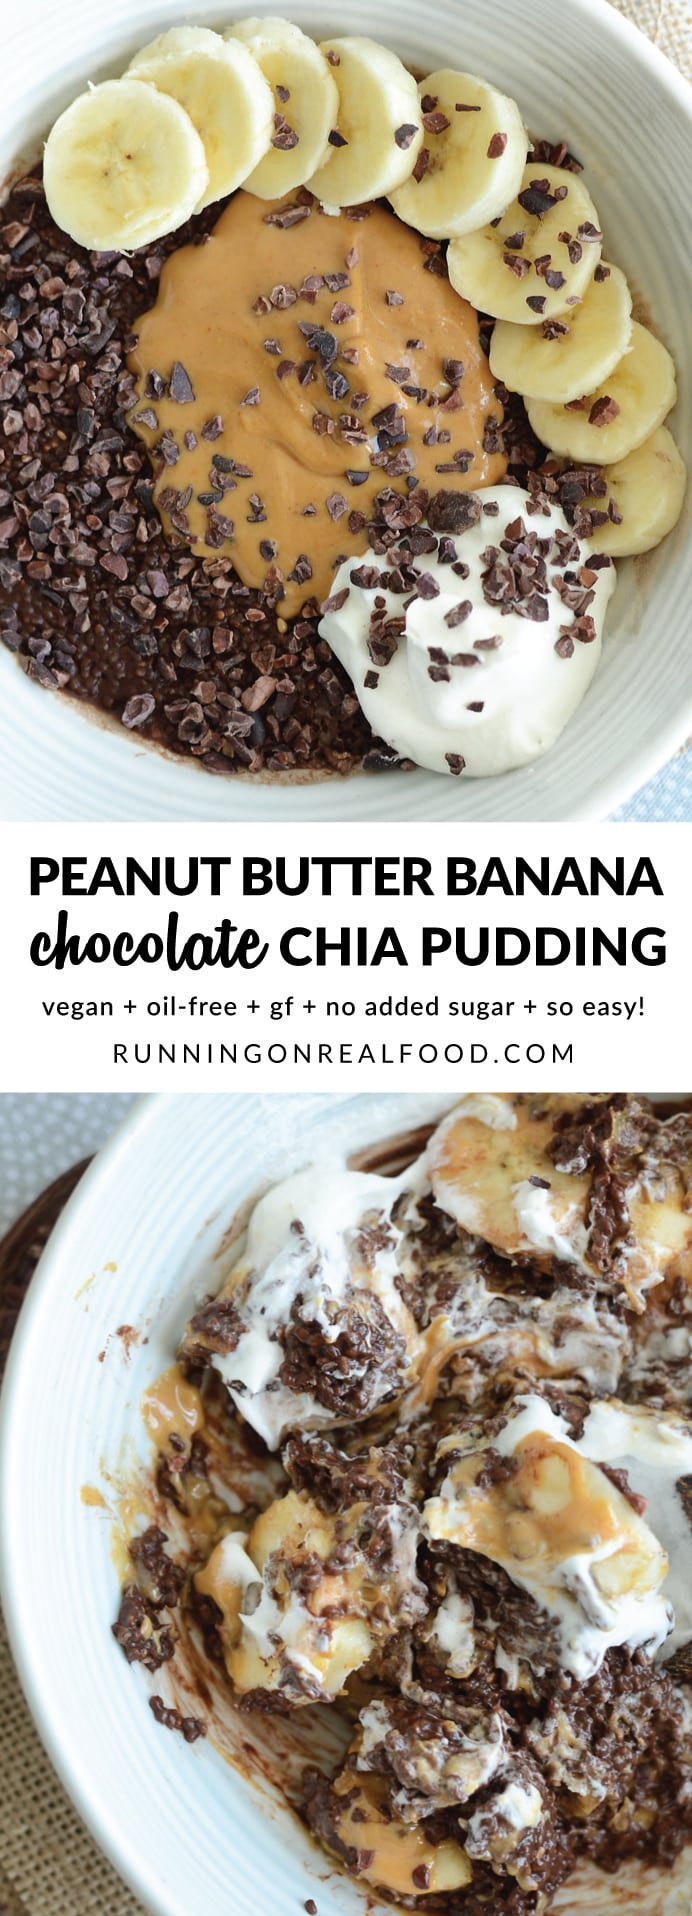 Chocolate chia pudding topped with banana, peanut butter and cacao nibs. Try it with all your favourite toppings like coconut whipped cream for a healthy and delicious dessert! Takes just minutes to prep and it's ready in 20-30 minutes or so. YUM!!